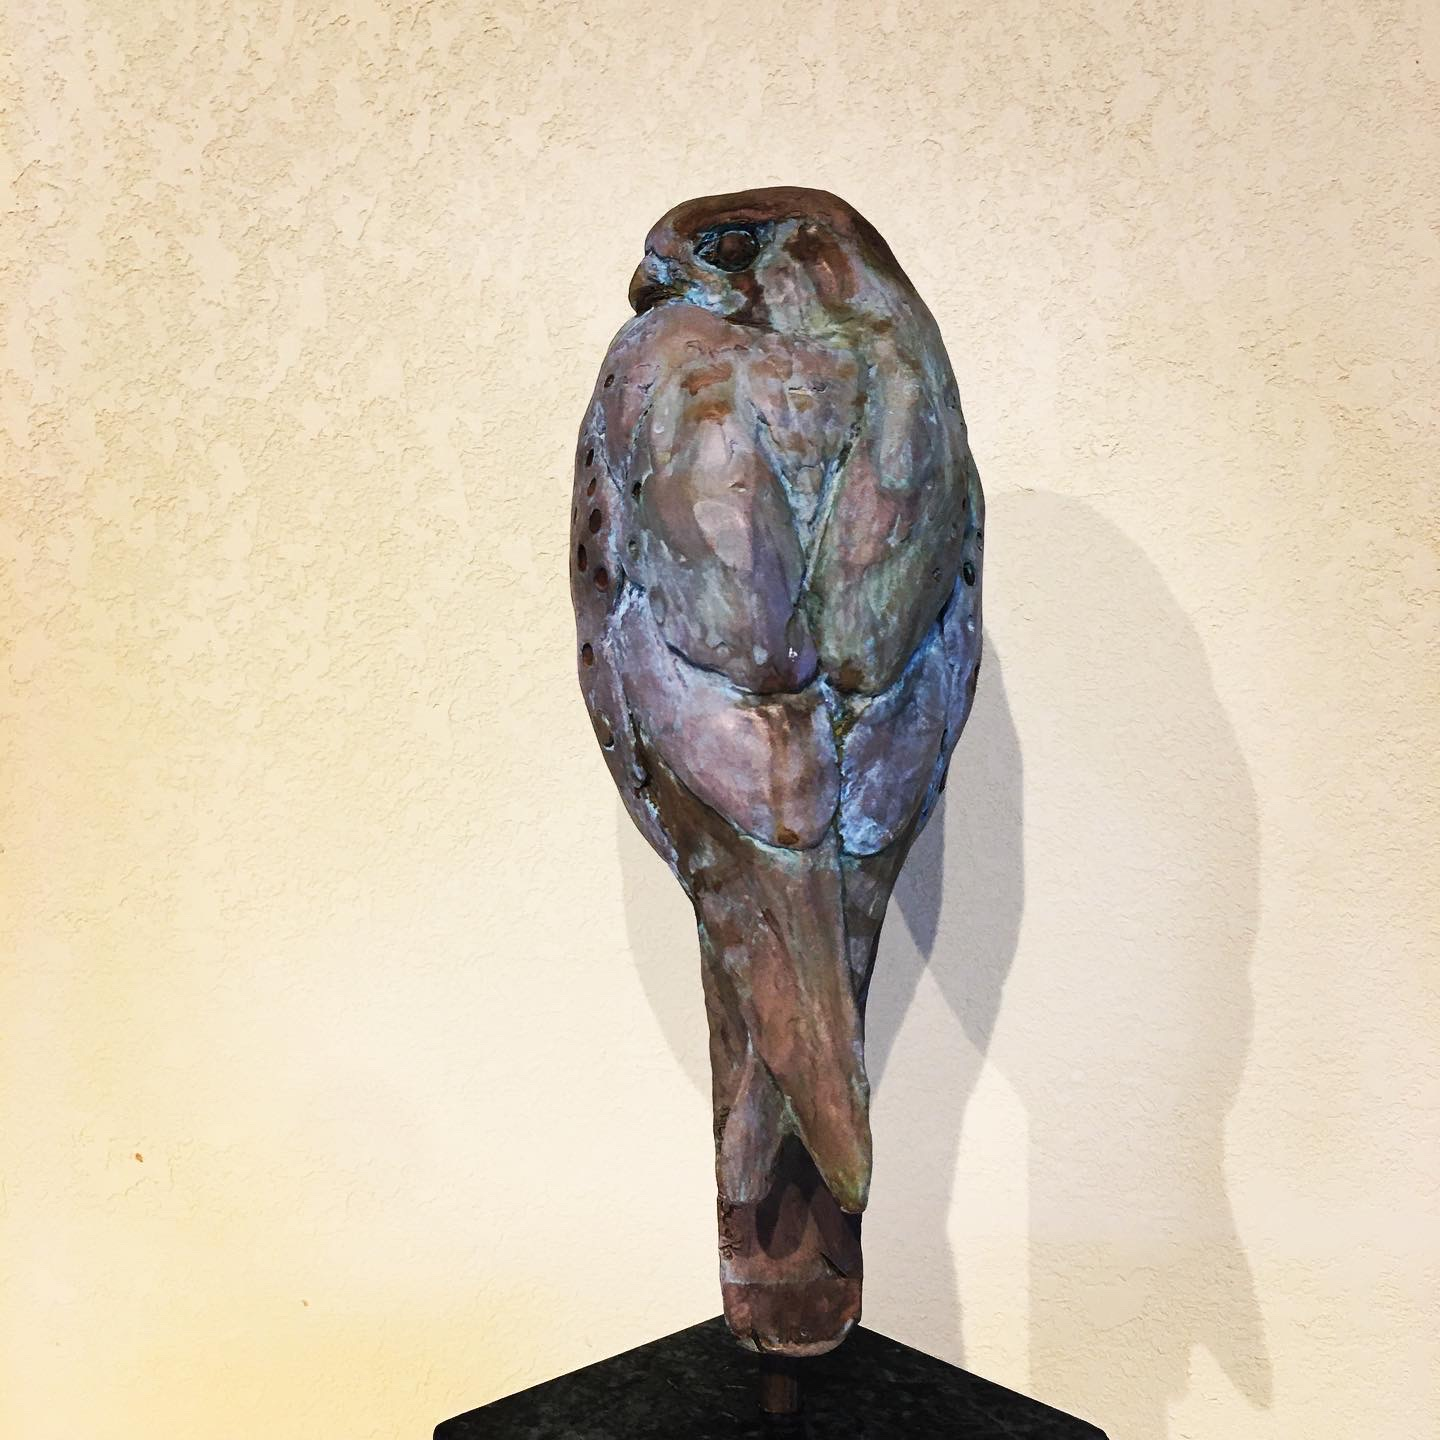 KESTREL IN BRONZE ON STONE BASE